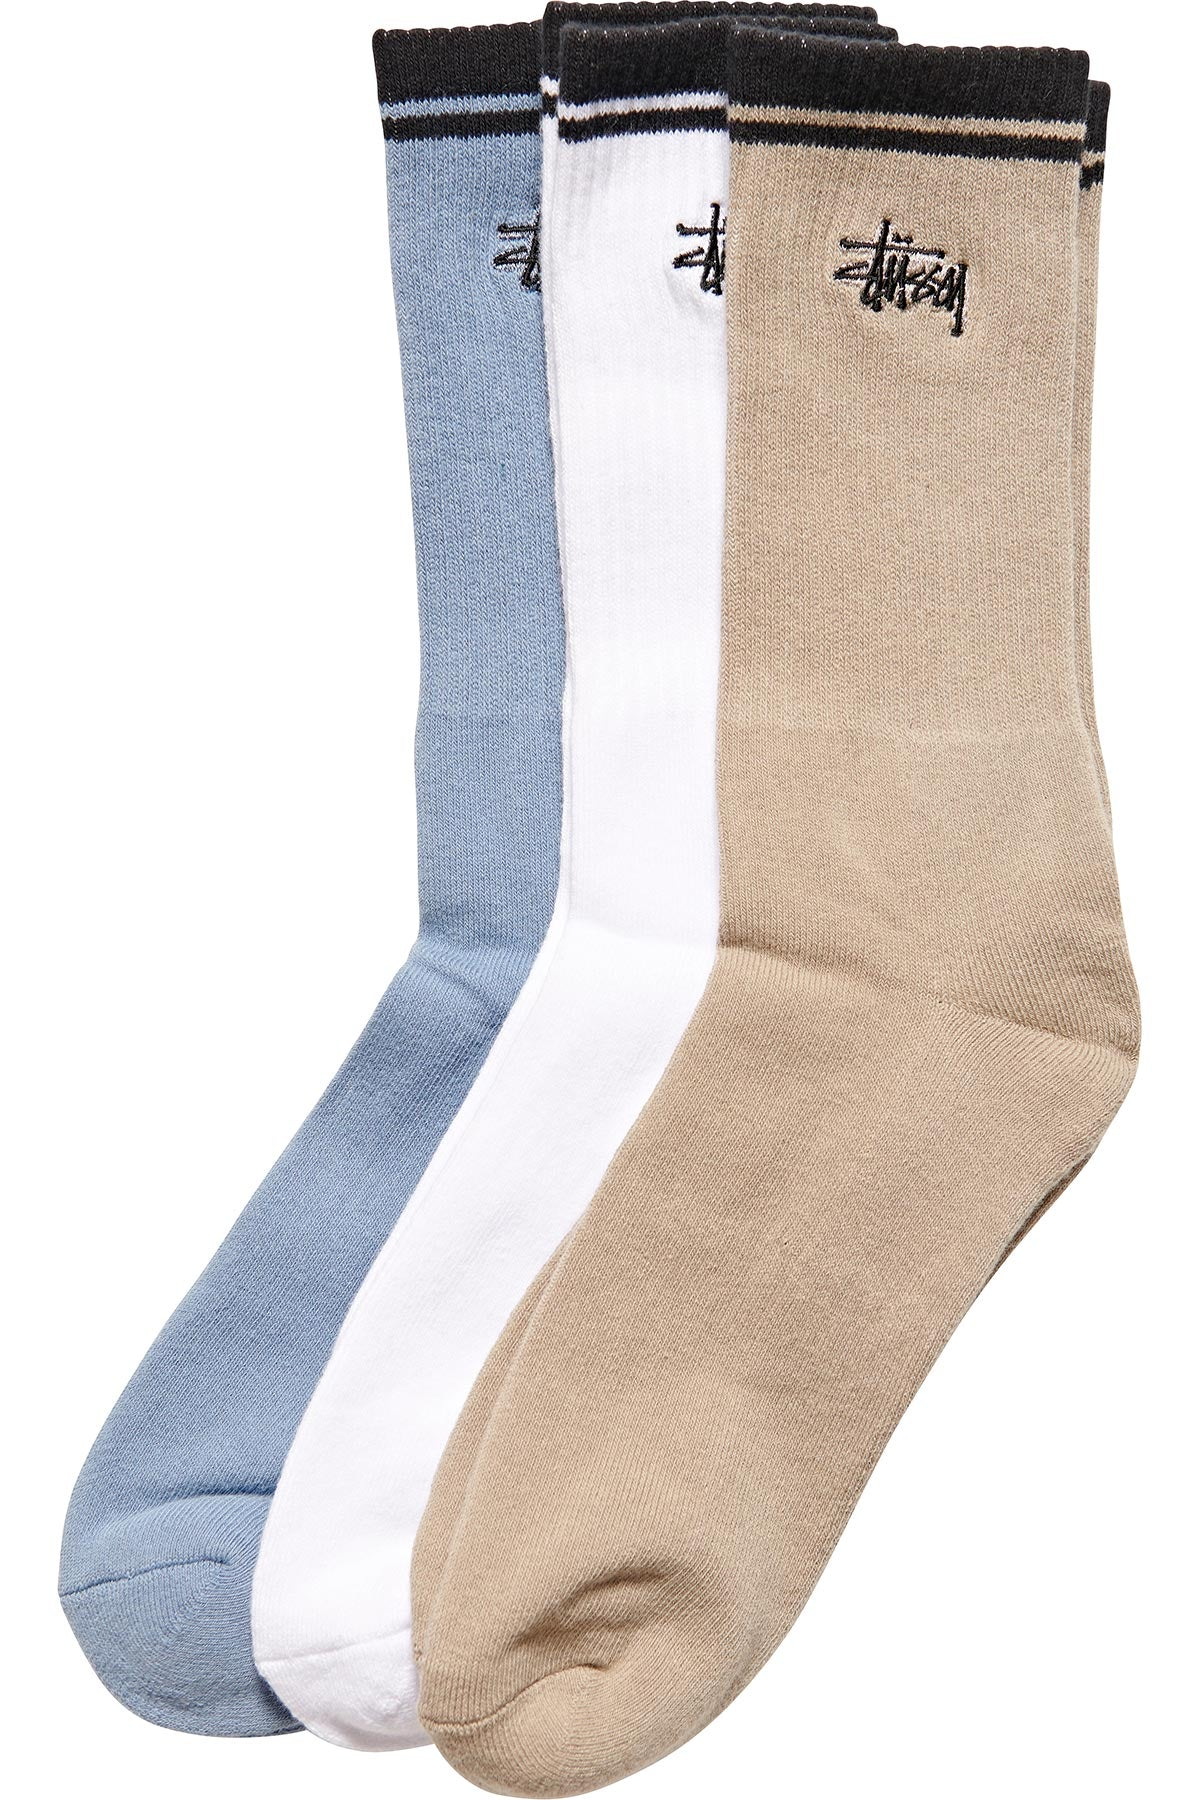 Top Stripe Graffiti Sock (3 Pack) - R8gzwear